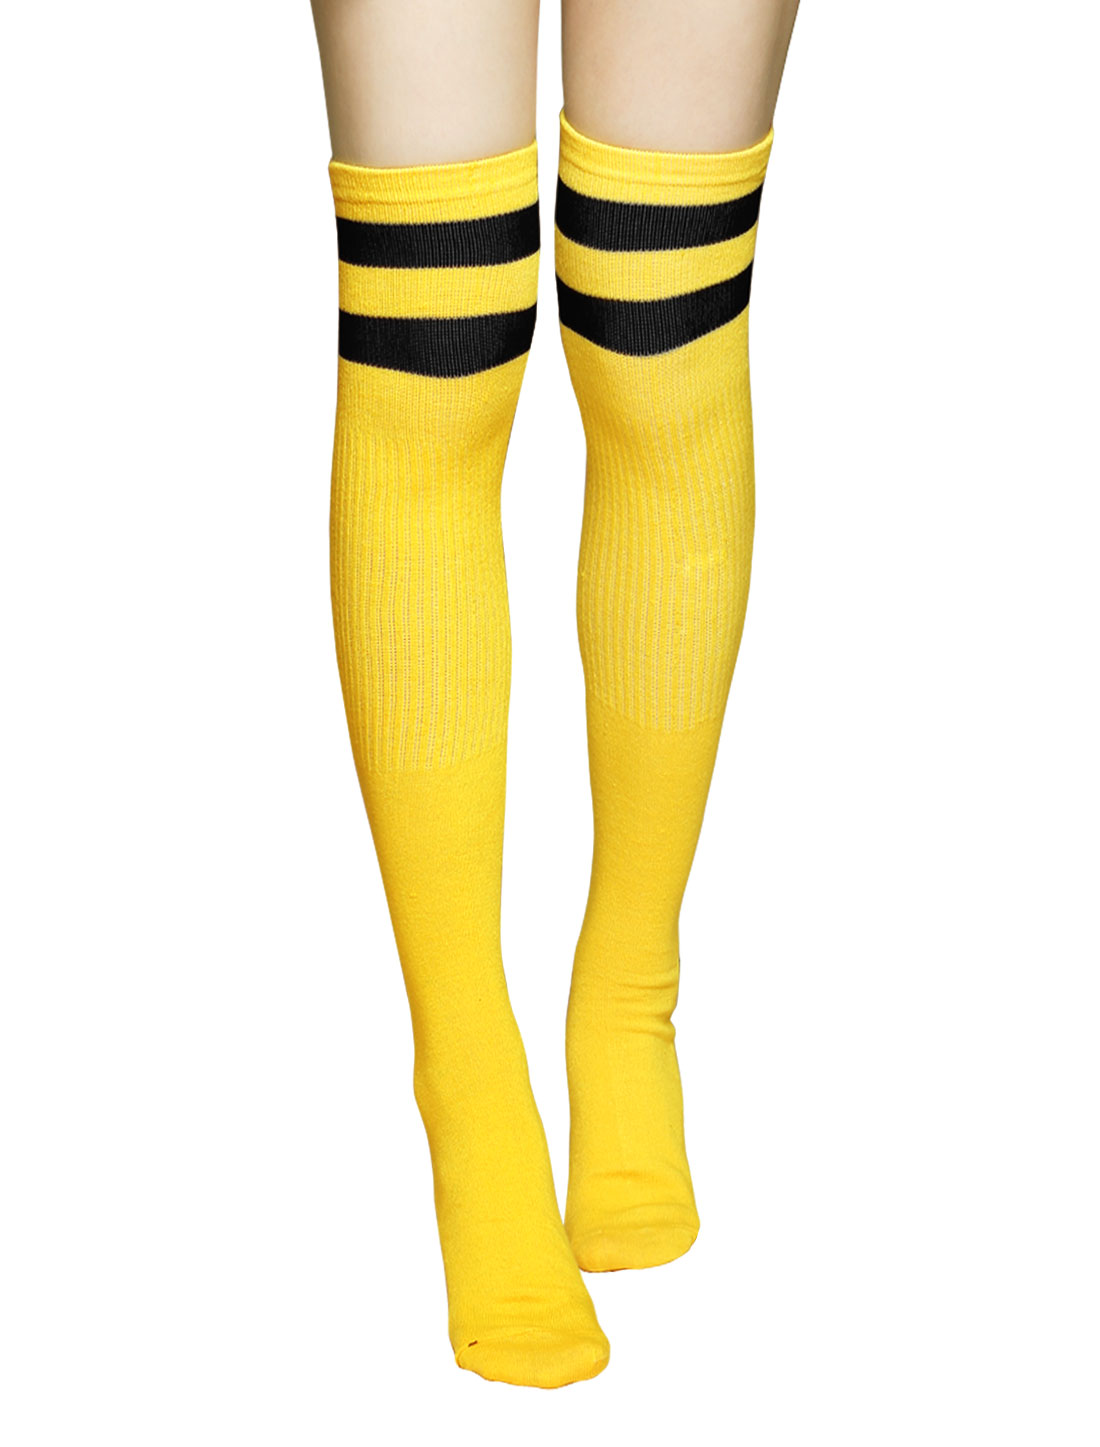 Unisex Knee High Ribbed Stripes Football Socks Pair Yellow